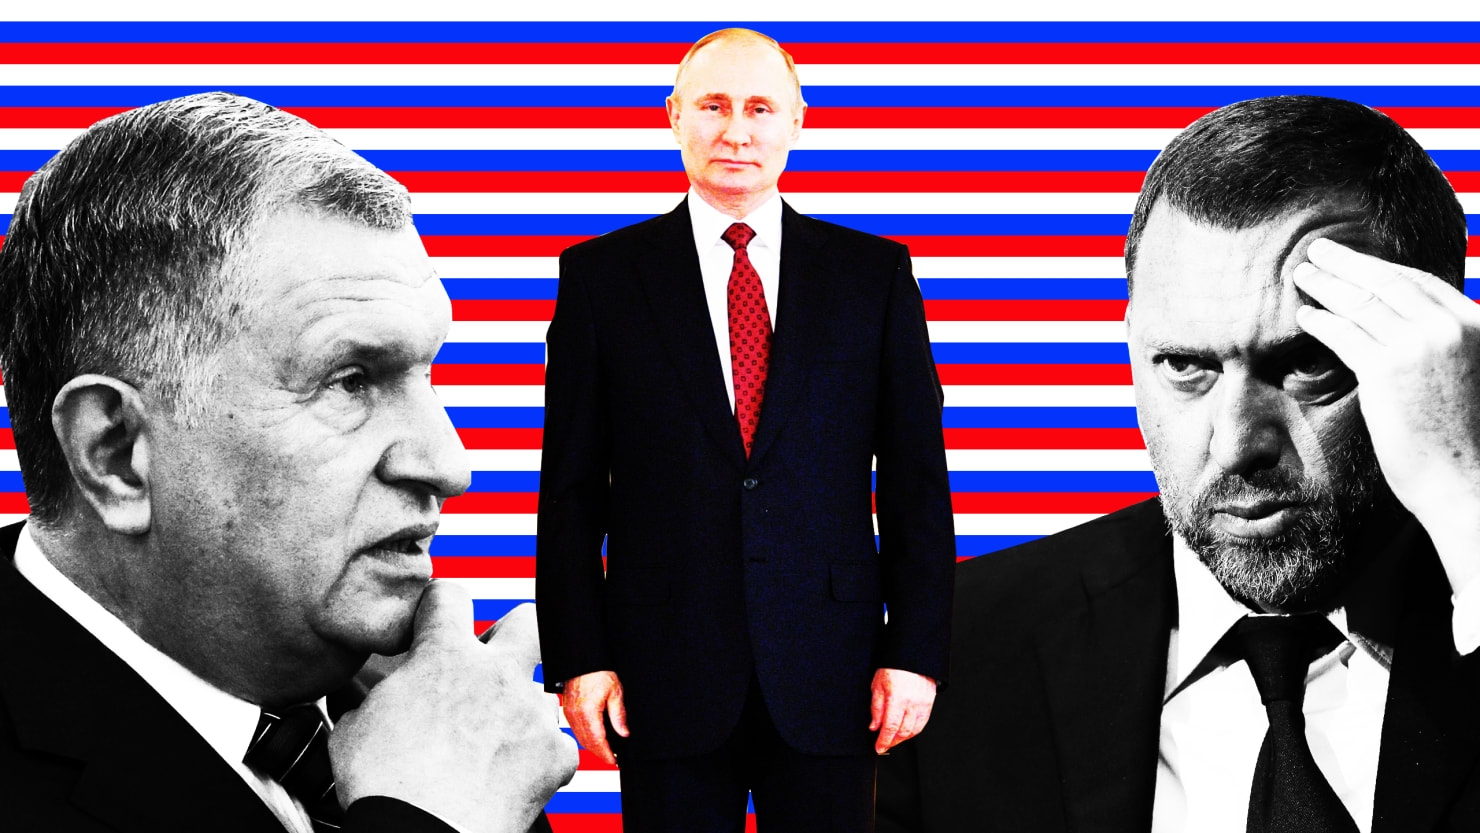 Vladimir Putin's Billionaire Buddies Are Getting Scared, and Not Just of Sanctions